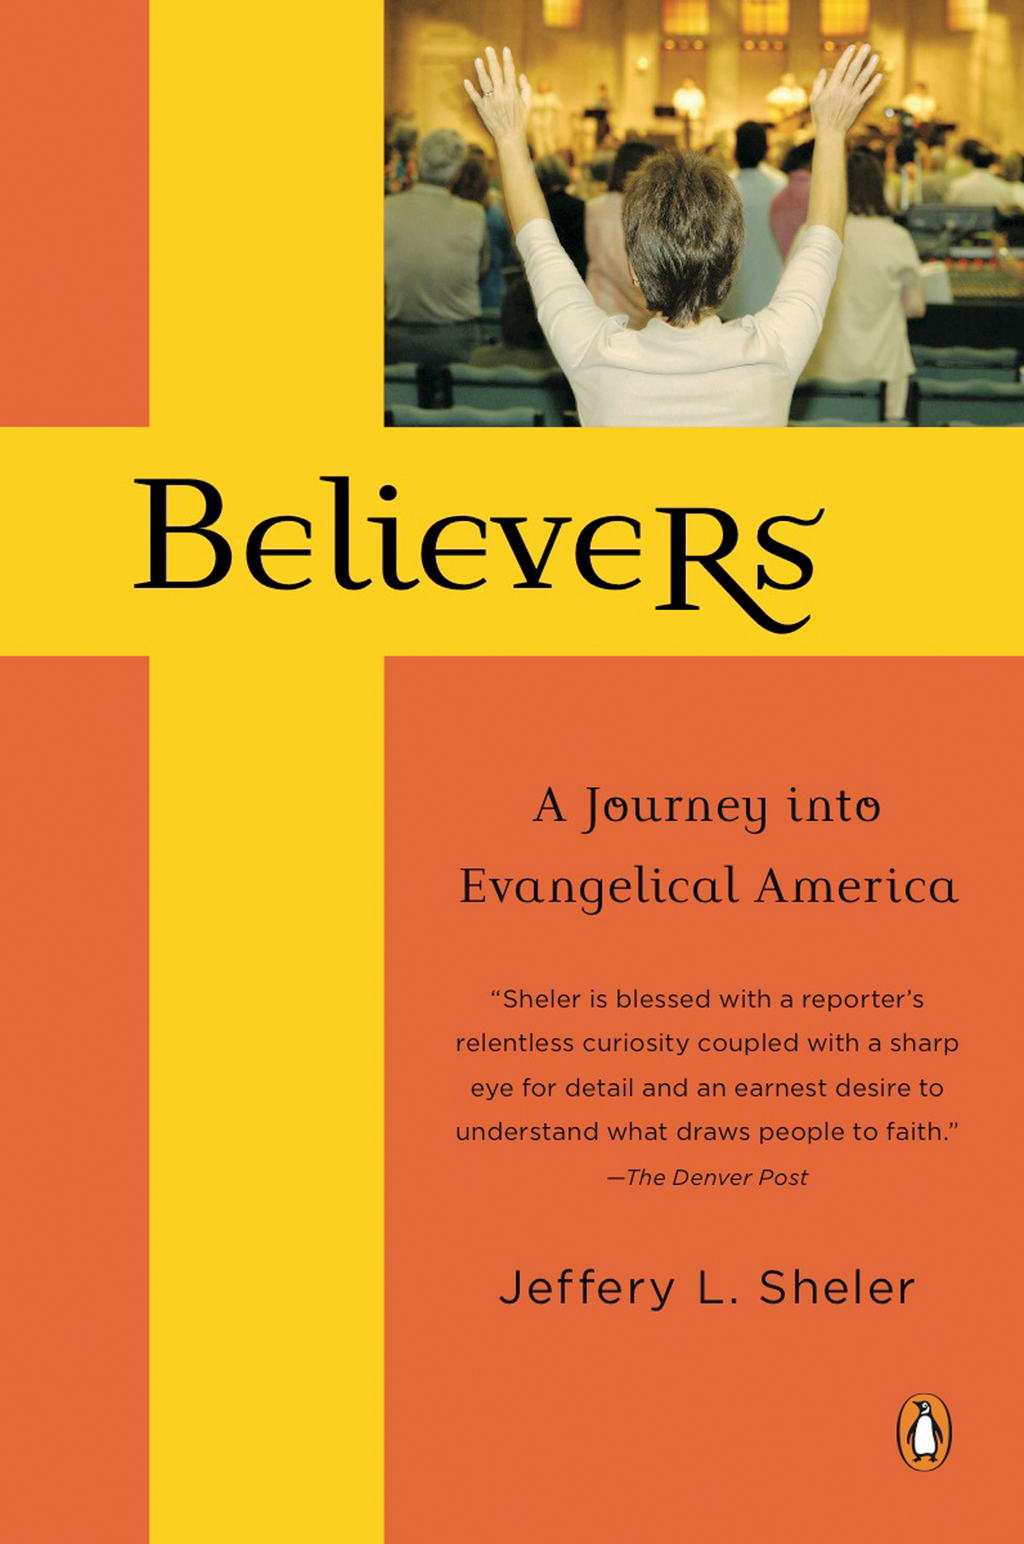 Believers By: Jeffery L. Sheler